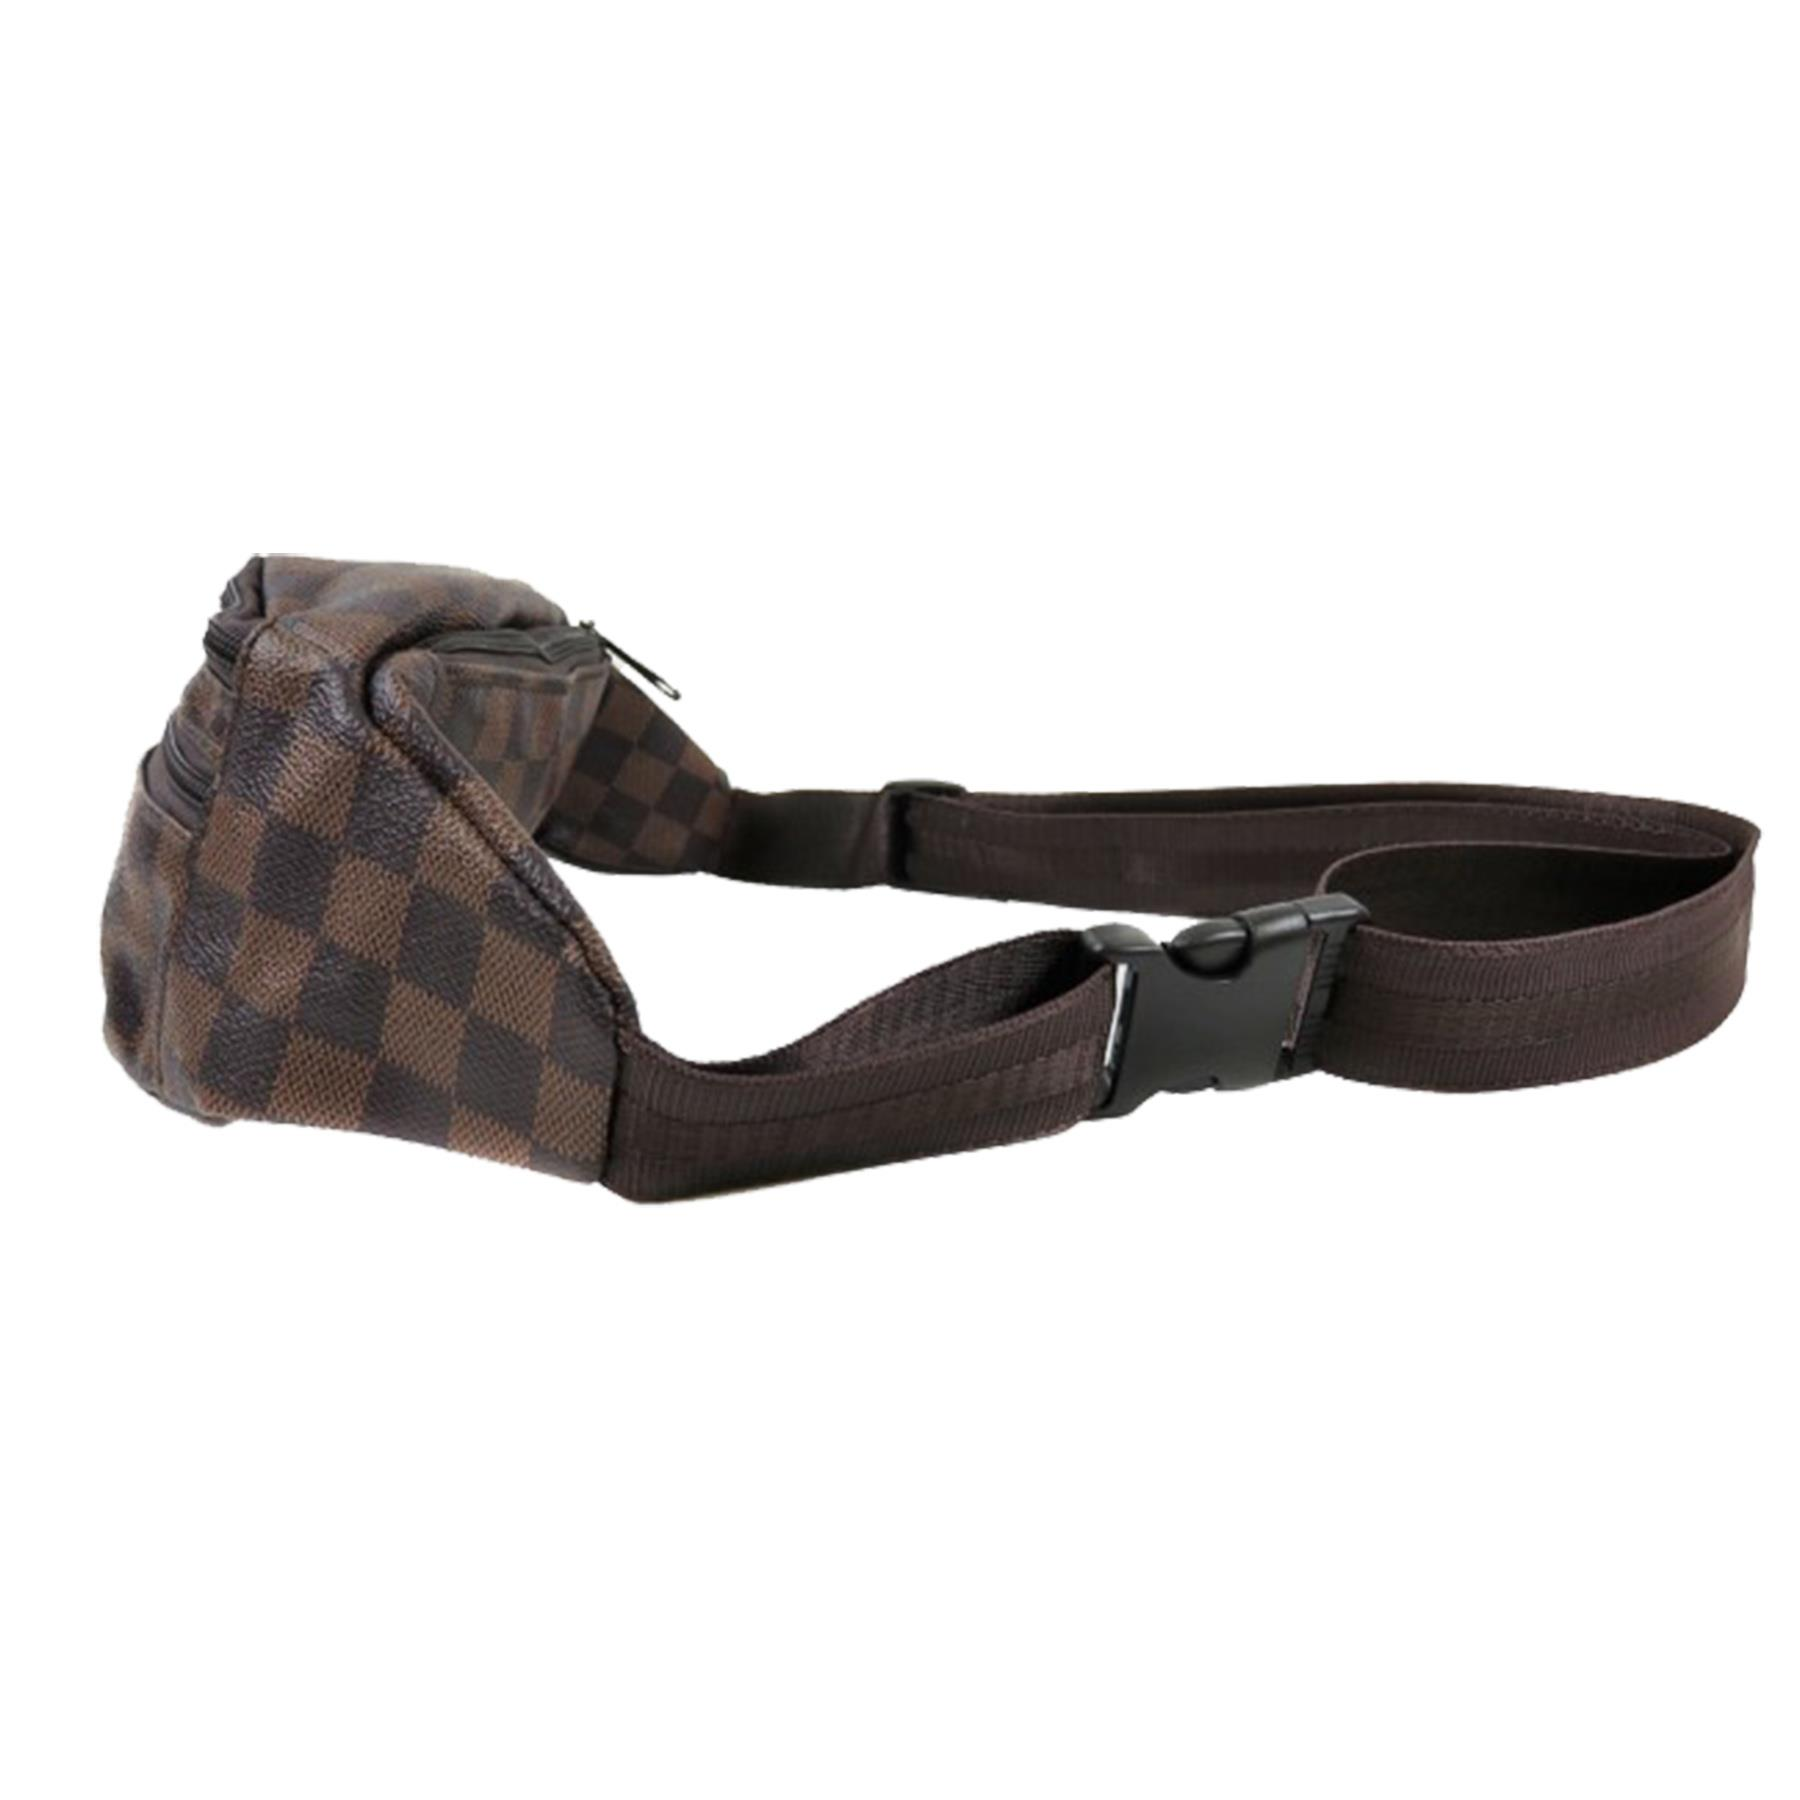 New-Women-s-Checked-Design-Synthetic-Leather-Fashion-Bum-Hip-Belt-Bag thumbnail 4